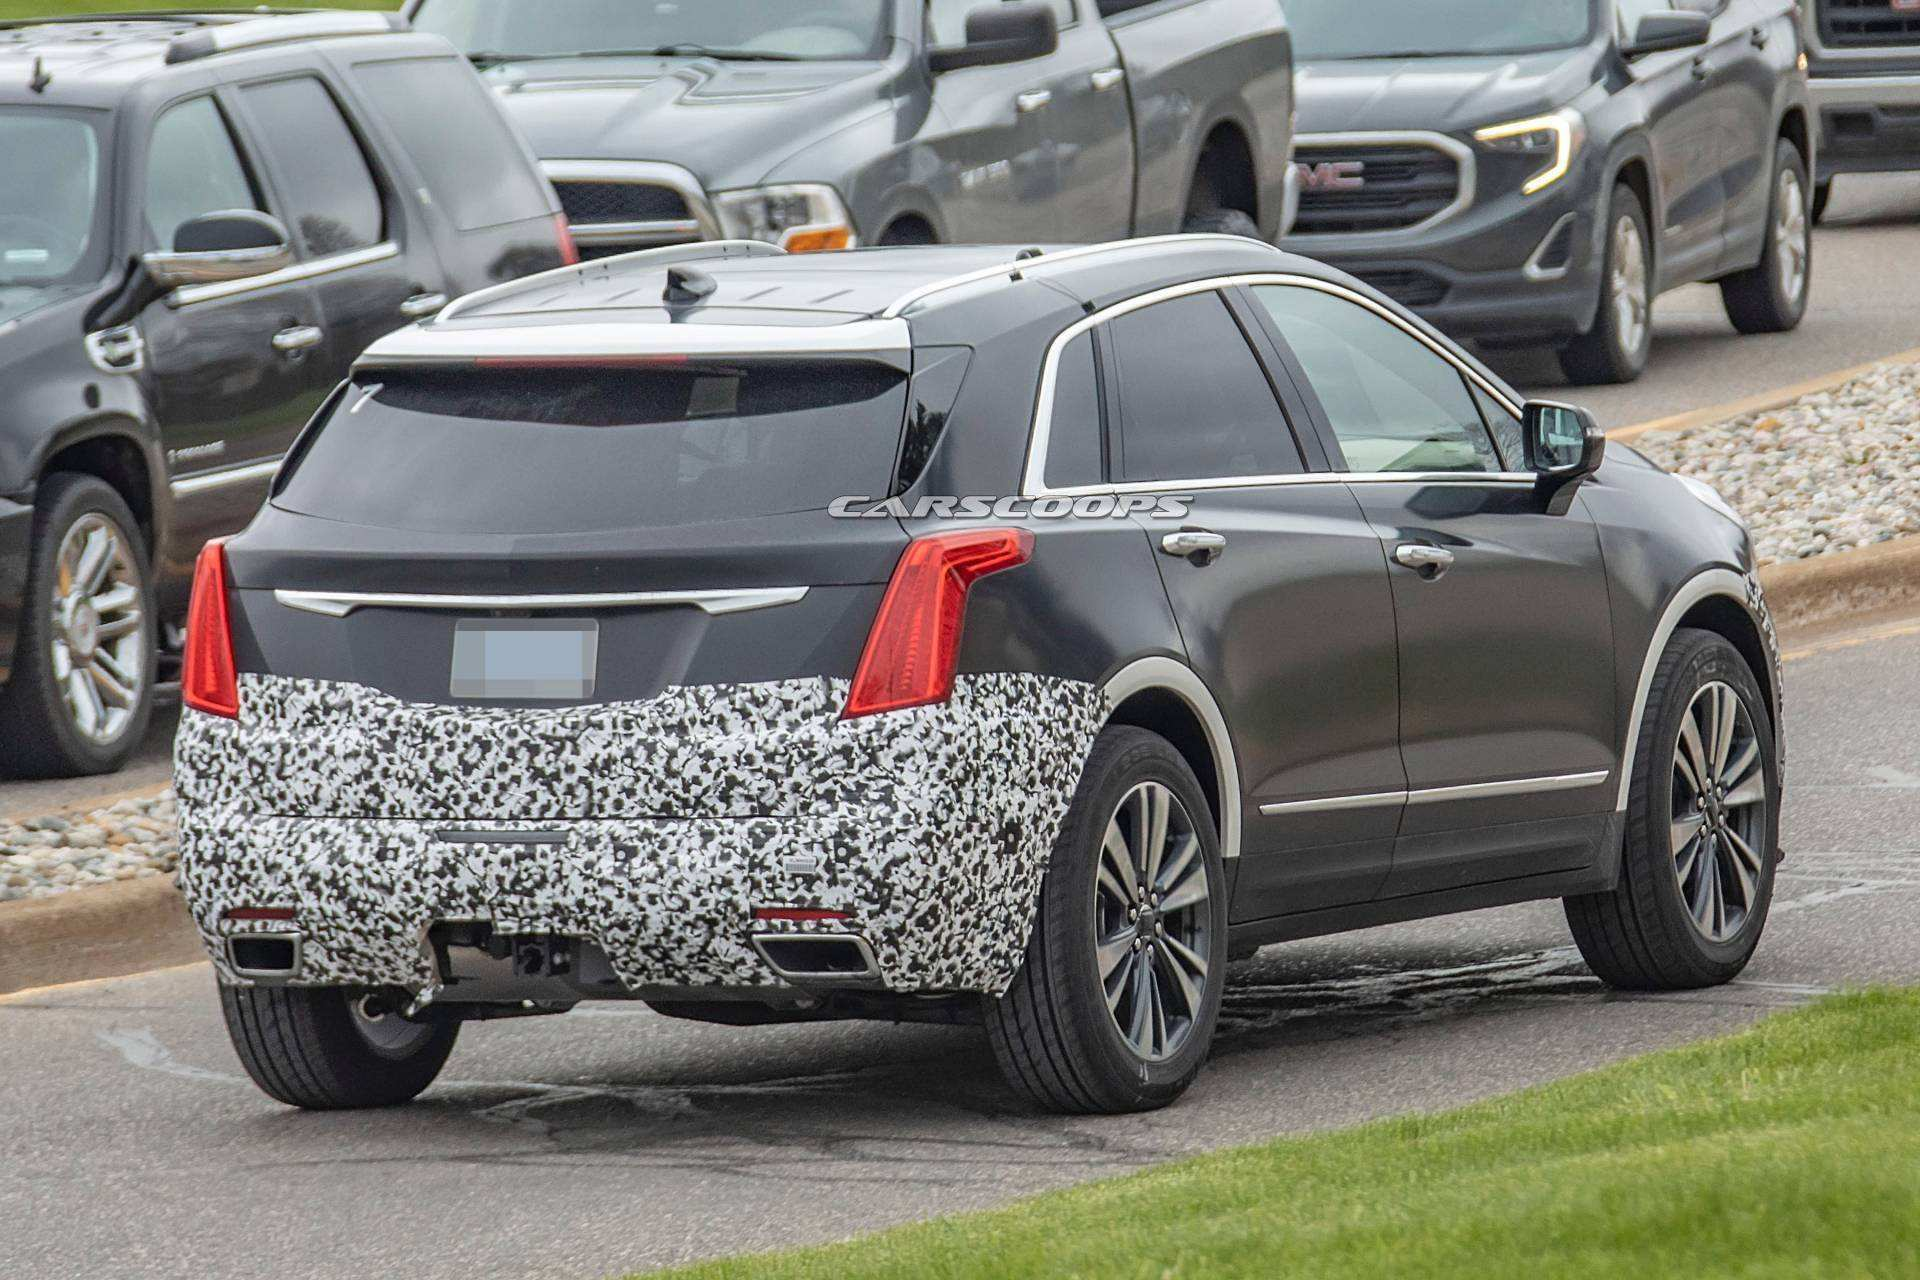 44 New Spy Shots Cadillac Xt5 Release by Spy Shots Cadillac Xt5